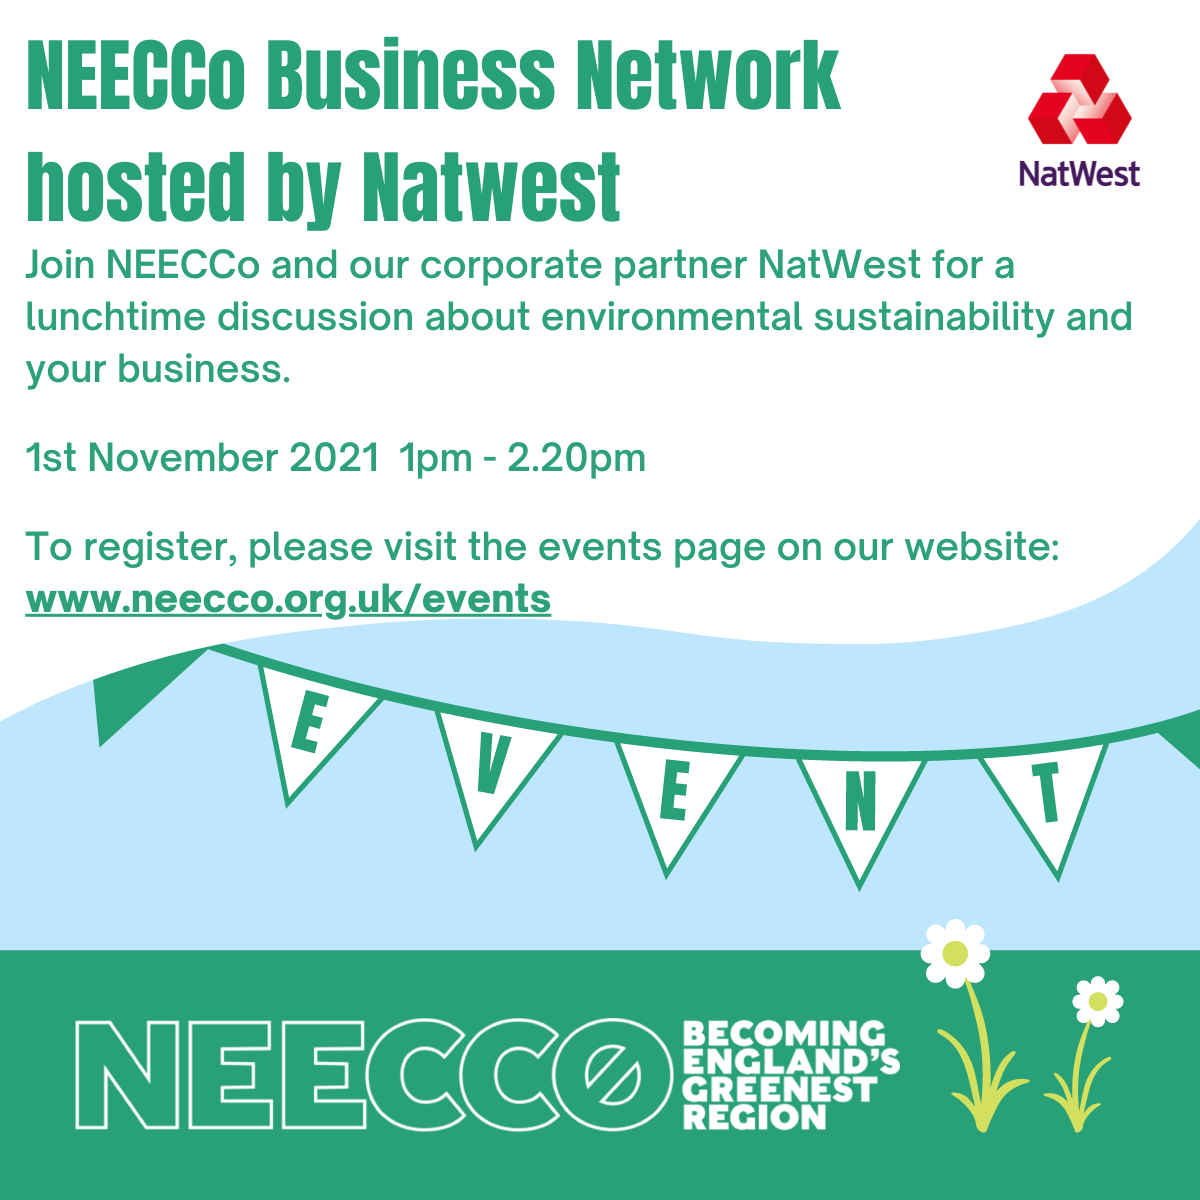 Event image NEECCo Business Network 1st November 1pm to 2.20pm in partnership with NatWest